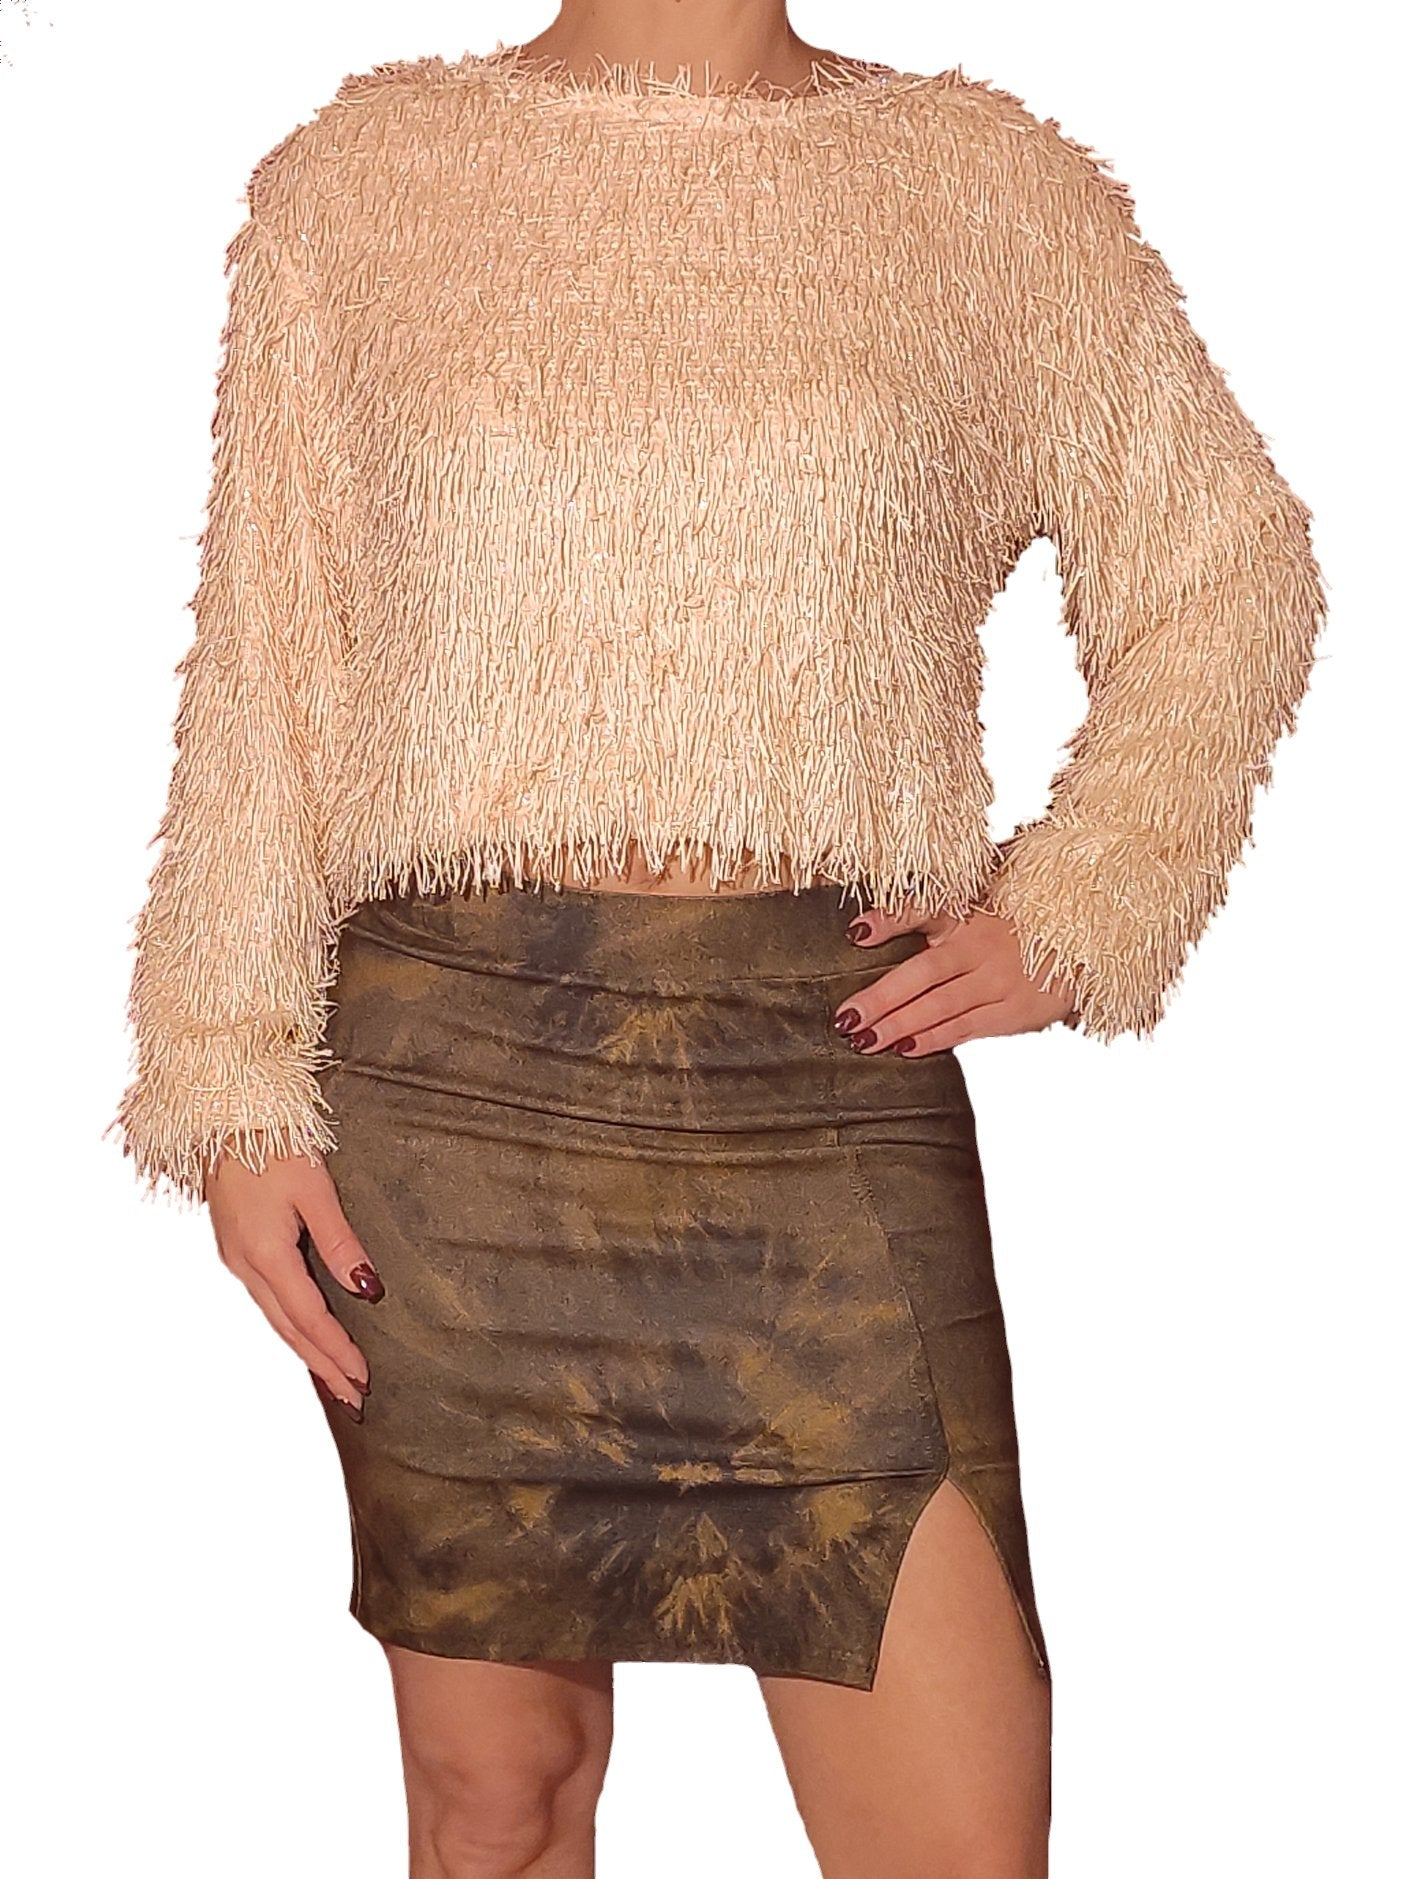 a-girl-wears-a-beige-blouse-with-gold-fringe-frontside